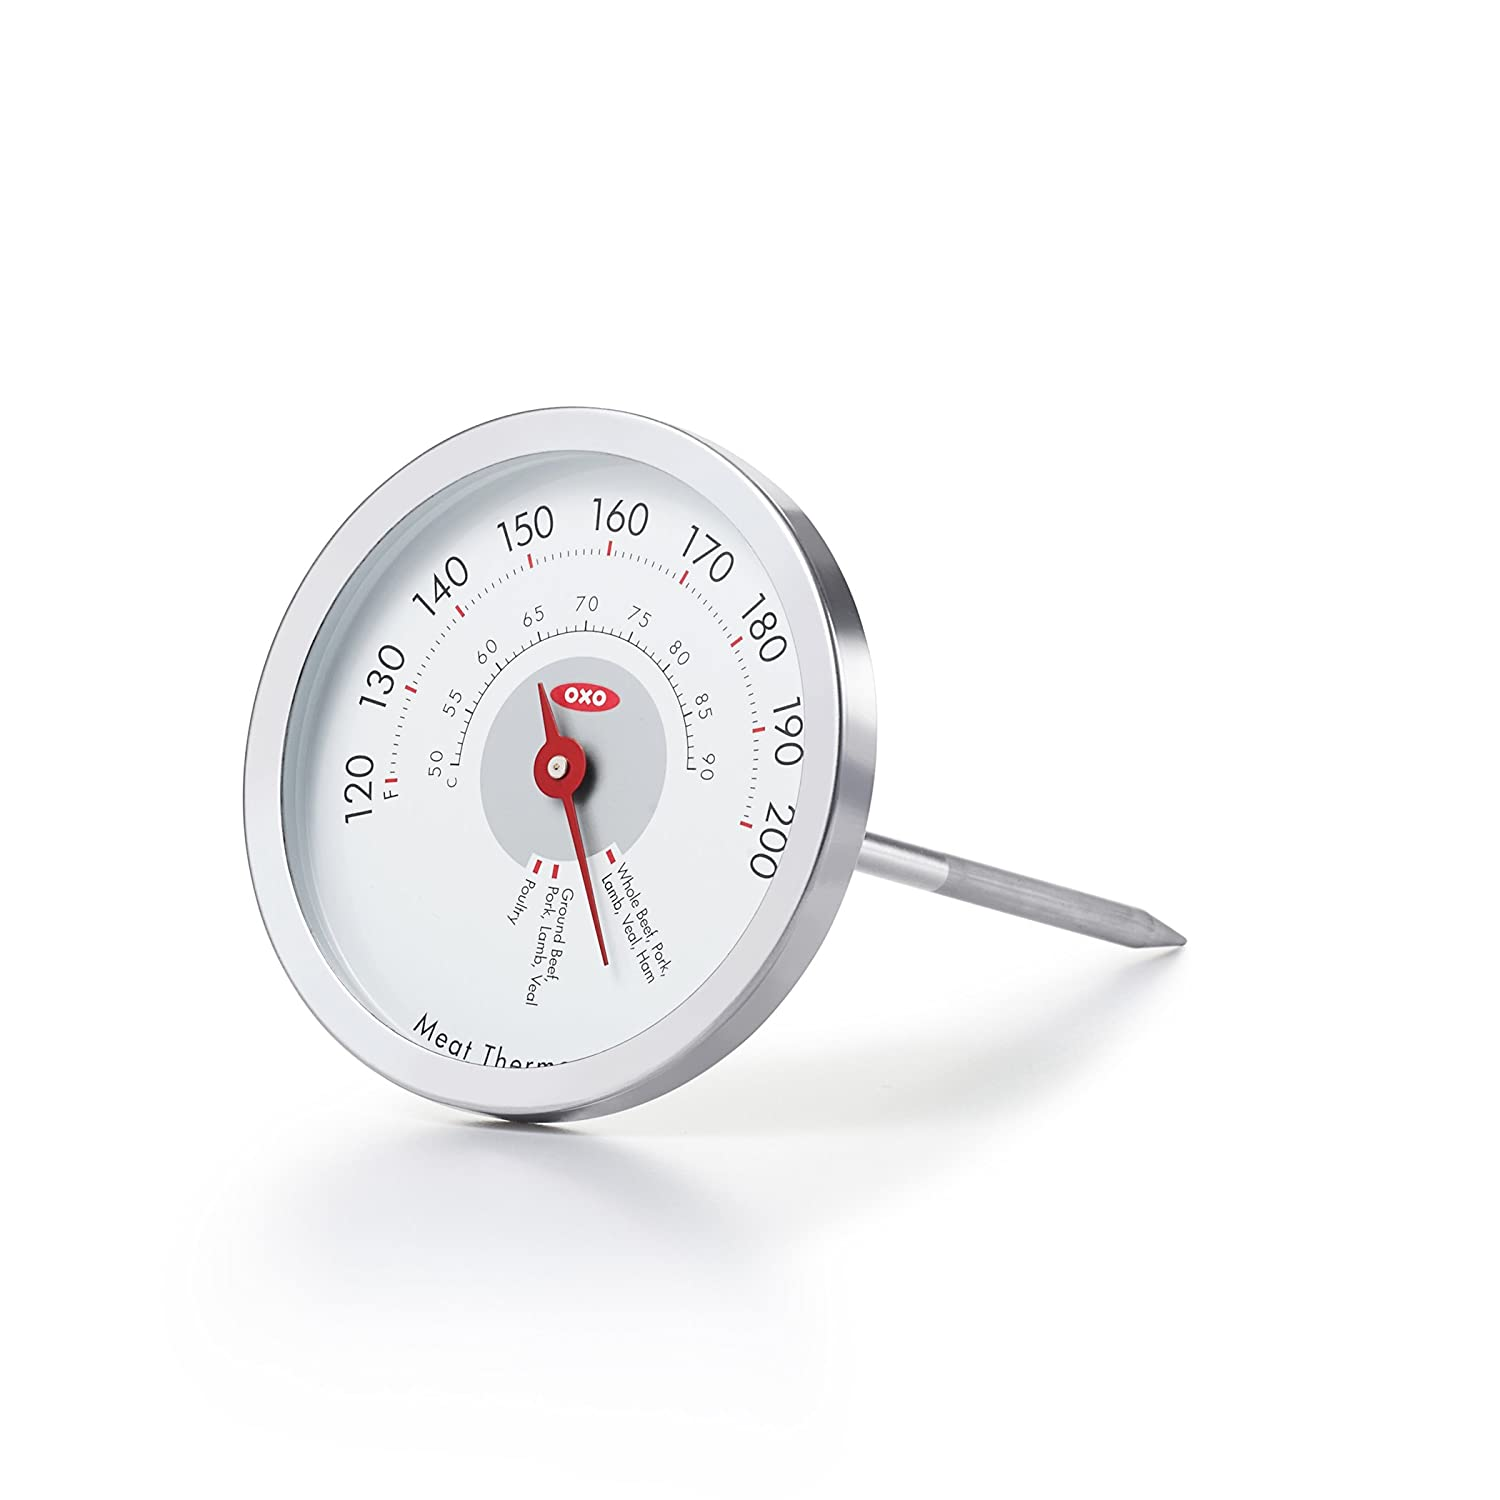 OXO Good Grips Chef's Precision Analog Leave-In Meat Thermometer